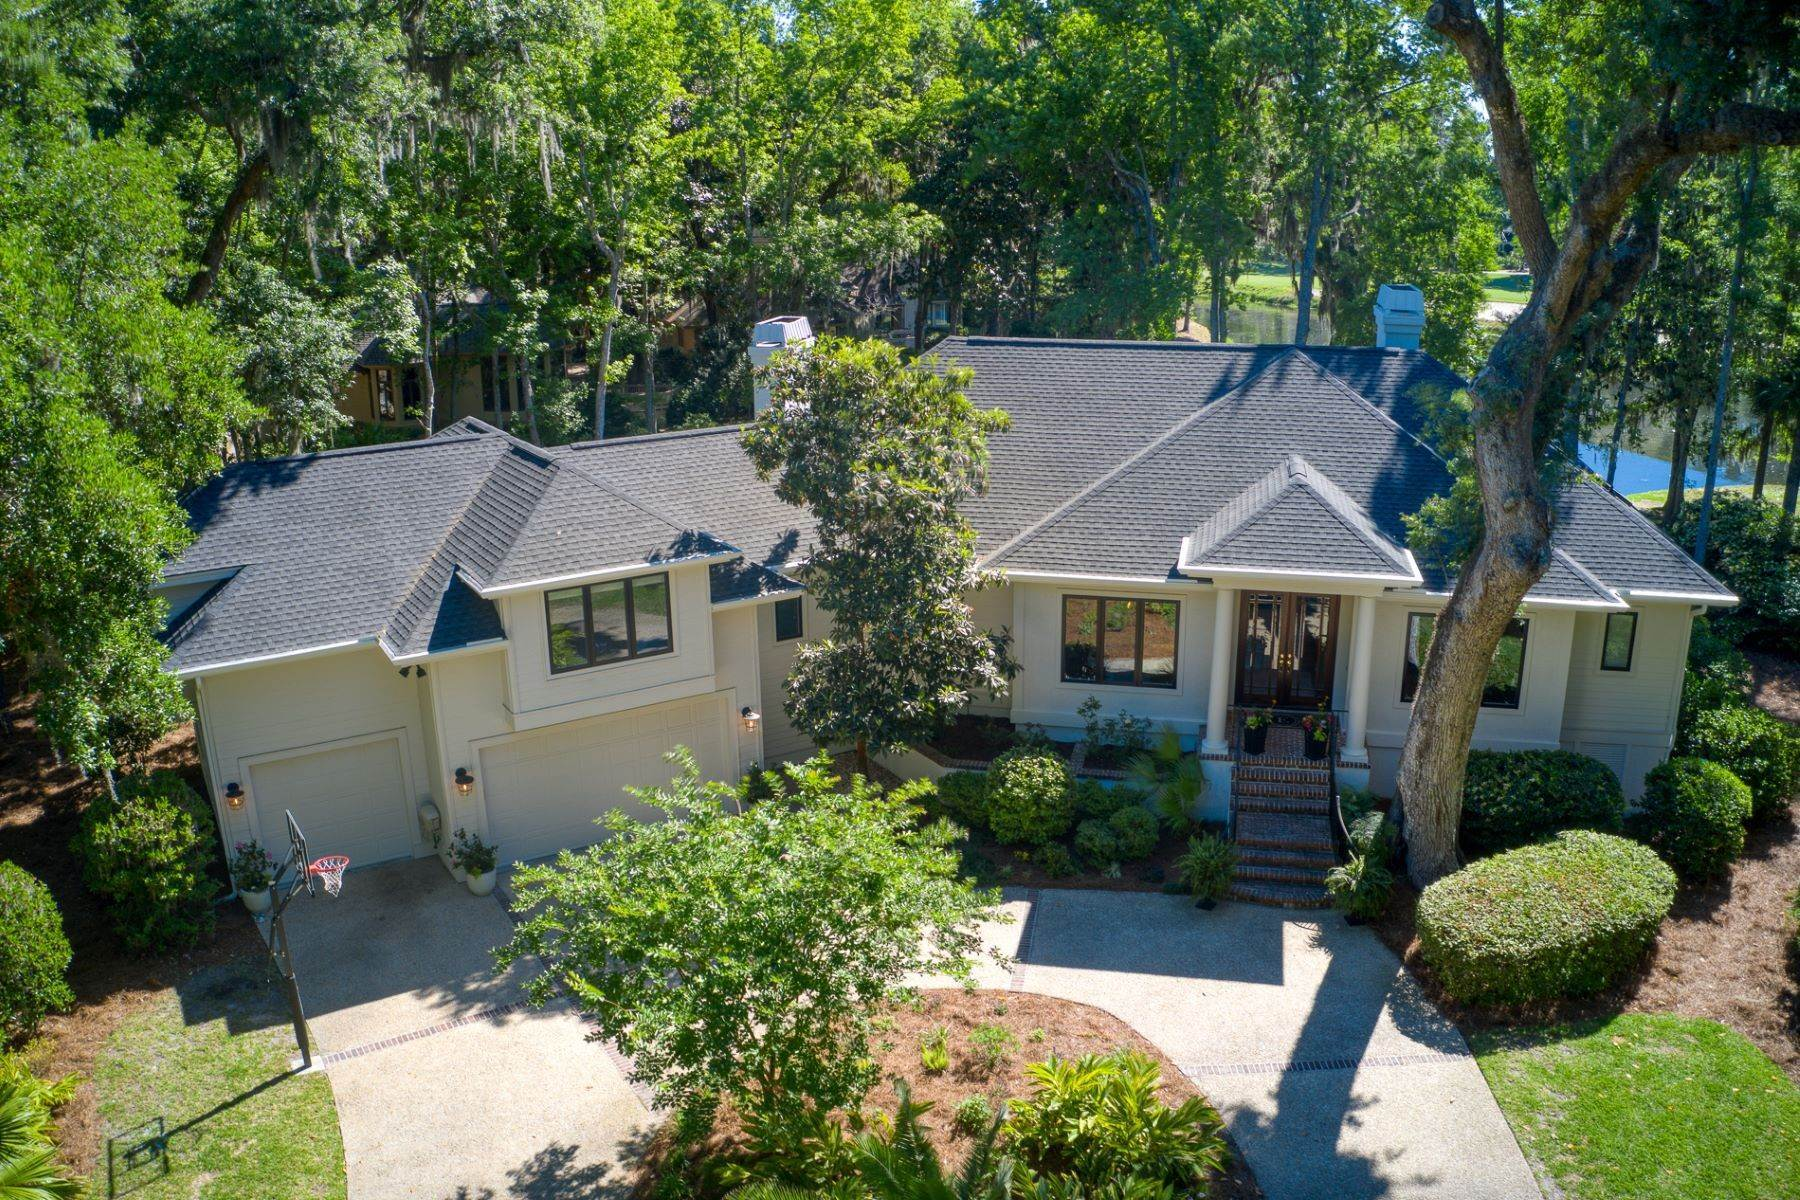 Single Family Homes for Sale at RECENTLY REMODELED HOME ON LAGOON OVERLOOKING GOLF COURSE IN LONG COVE CLUB 8 Chelsea Court Hilton Head Island, South Carolina 29928 United States